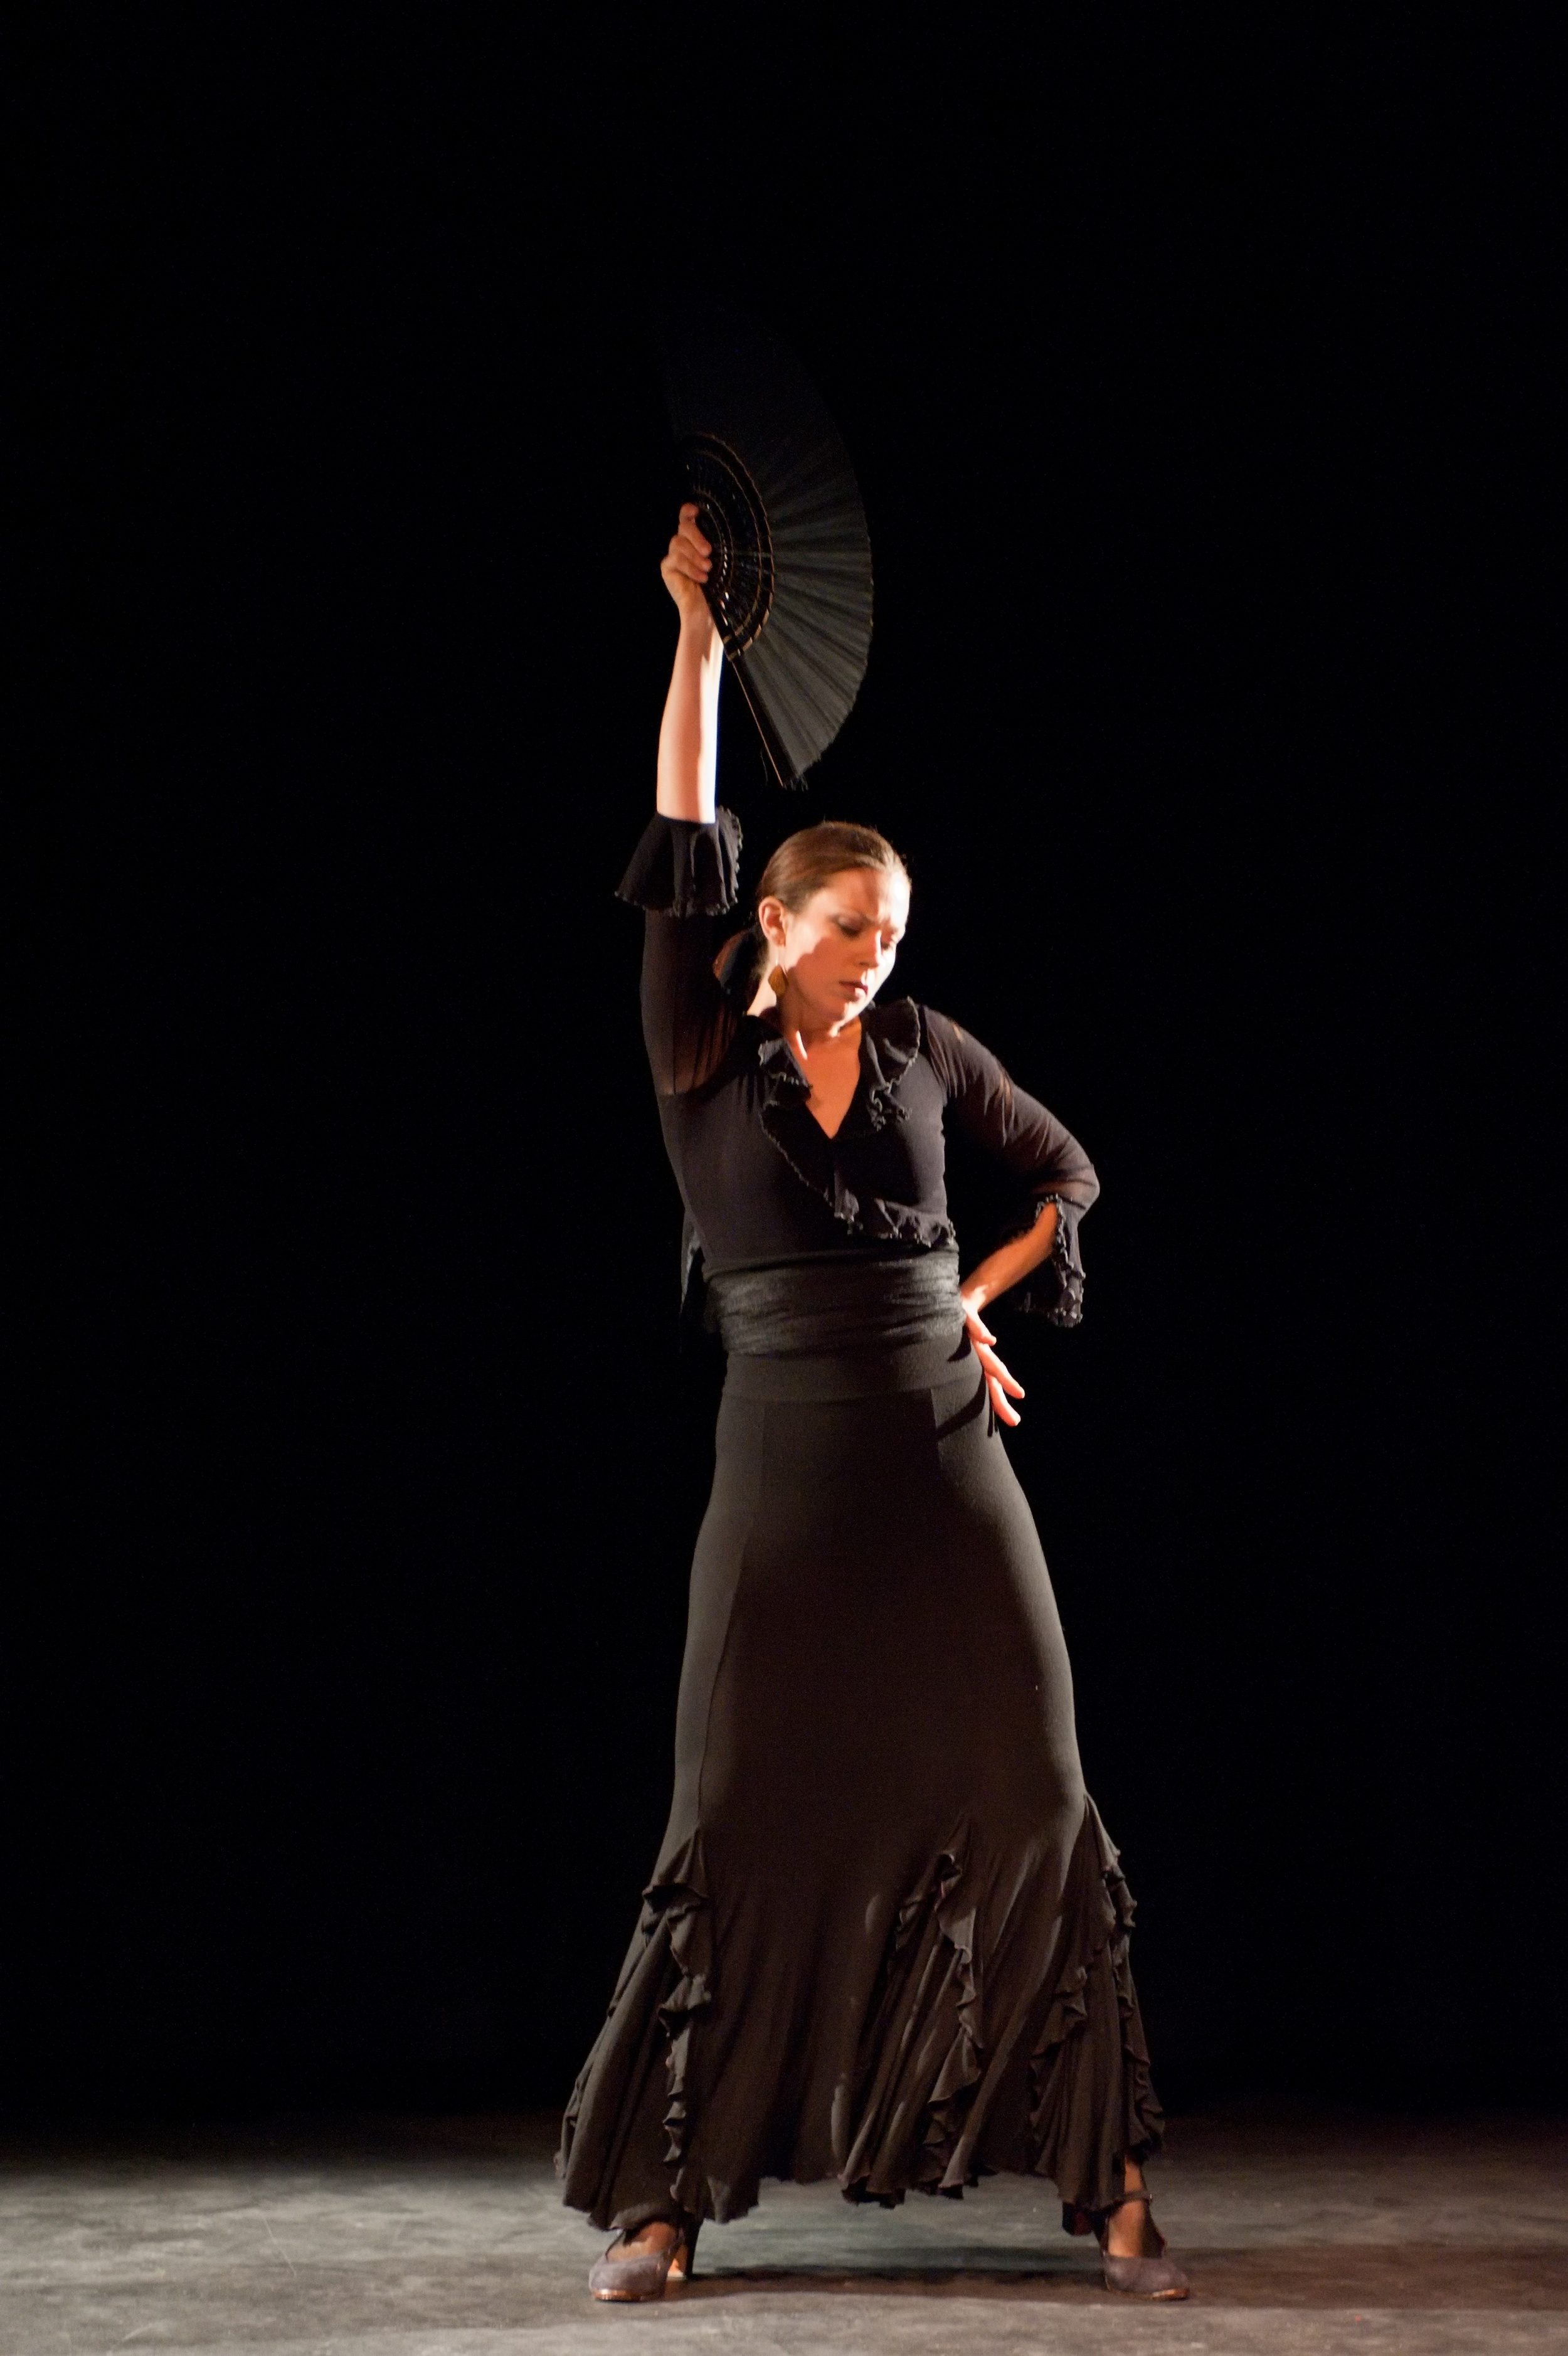 Oregon Live - 'Flamenco Agridulce' at Portland's Milagro Theatre blends fiery emotionalism with smooth technique -